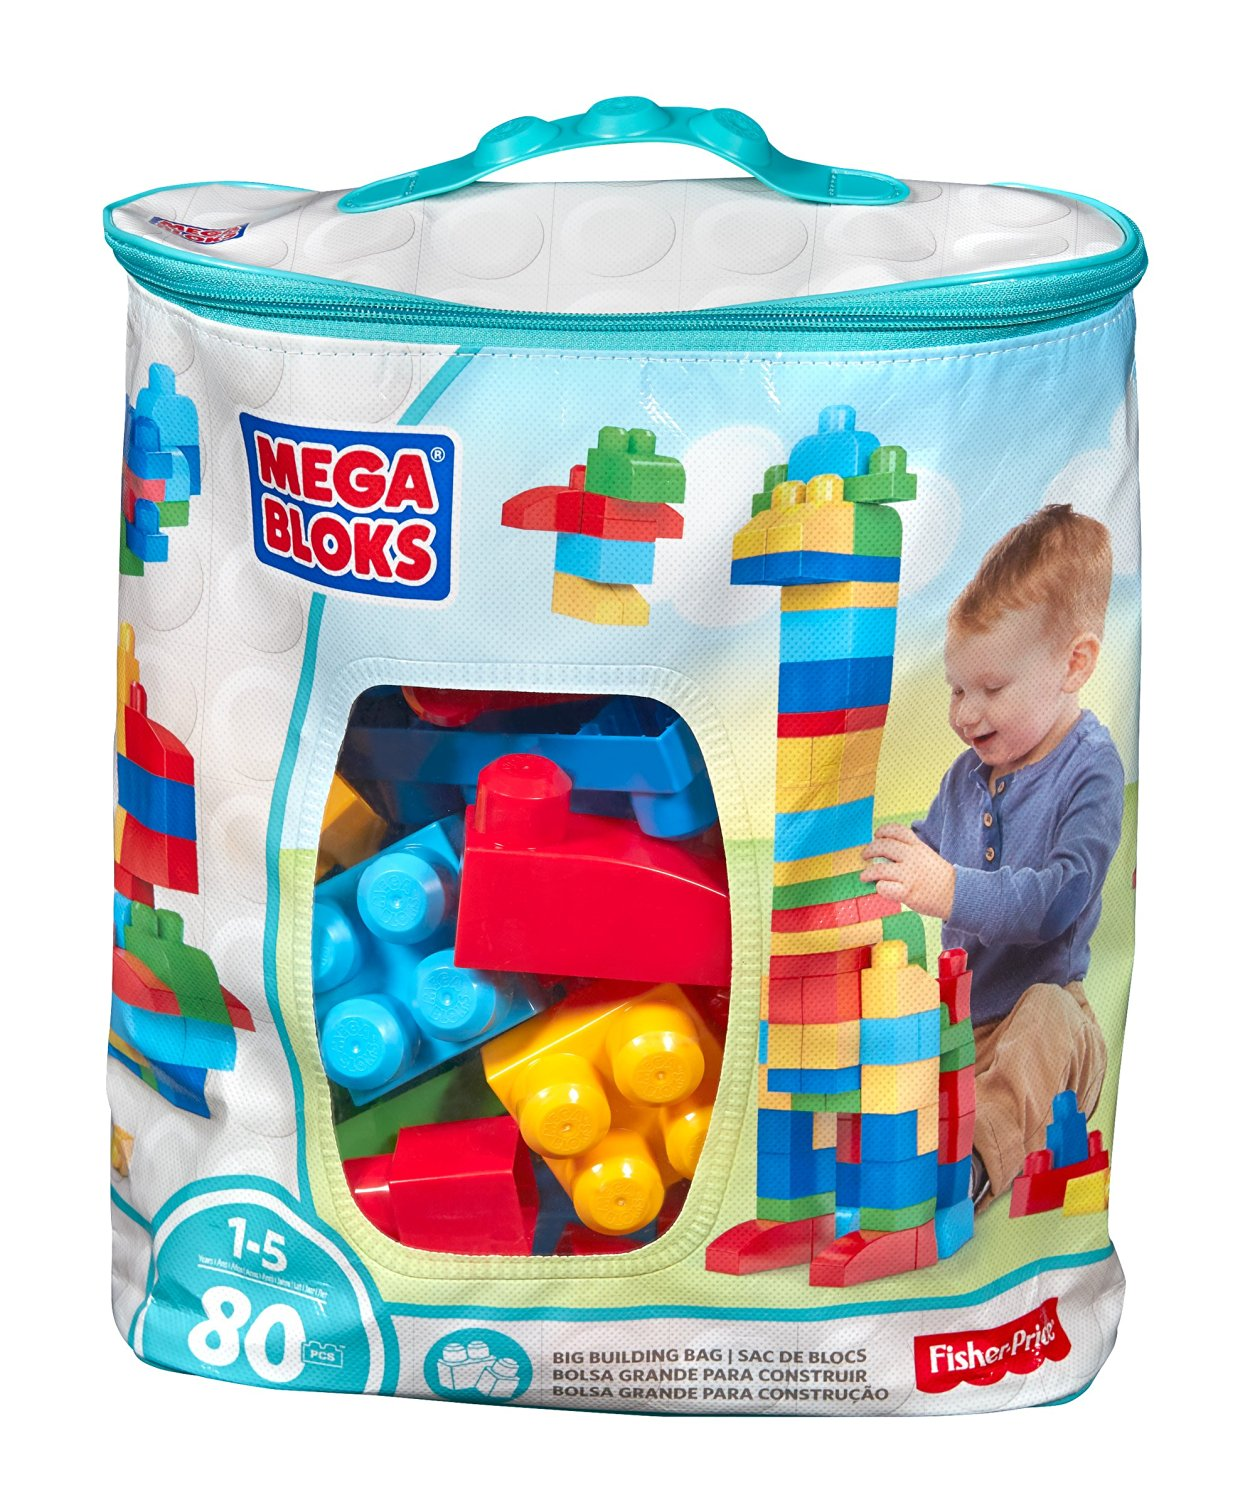 Mega Bloks, Toddler Toys, Toys for toddlers, best toddler gift, gifts for toddlers, toddler present, christmas toddler toy